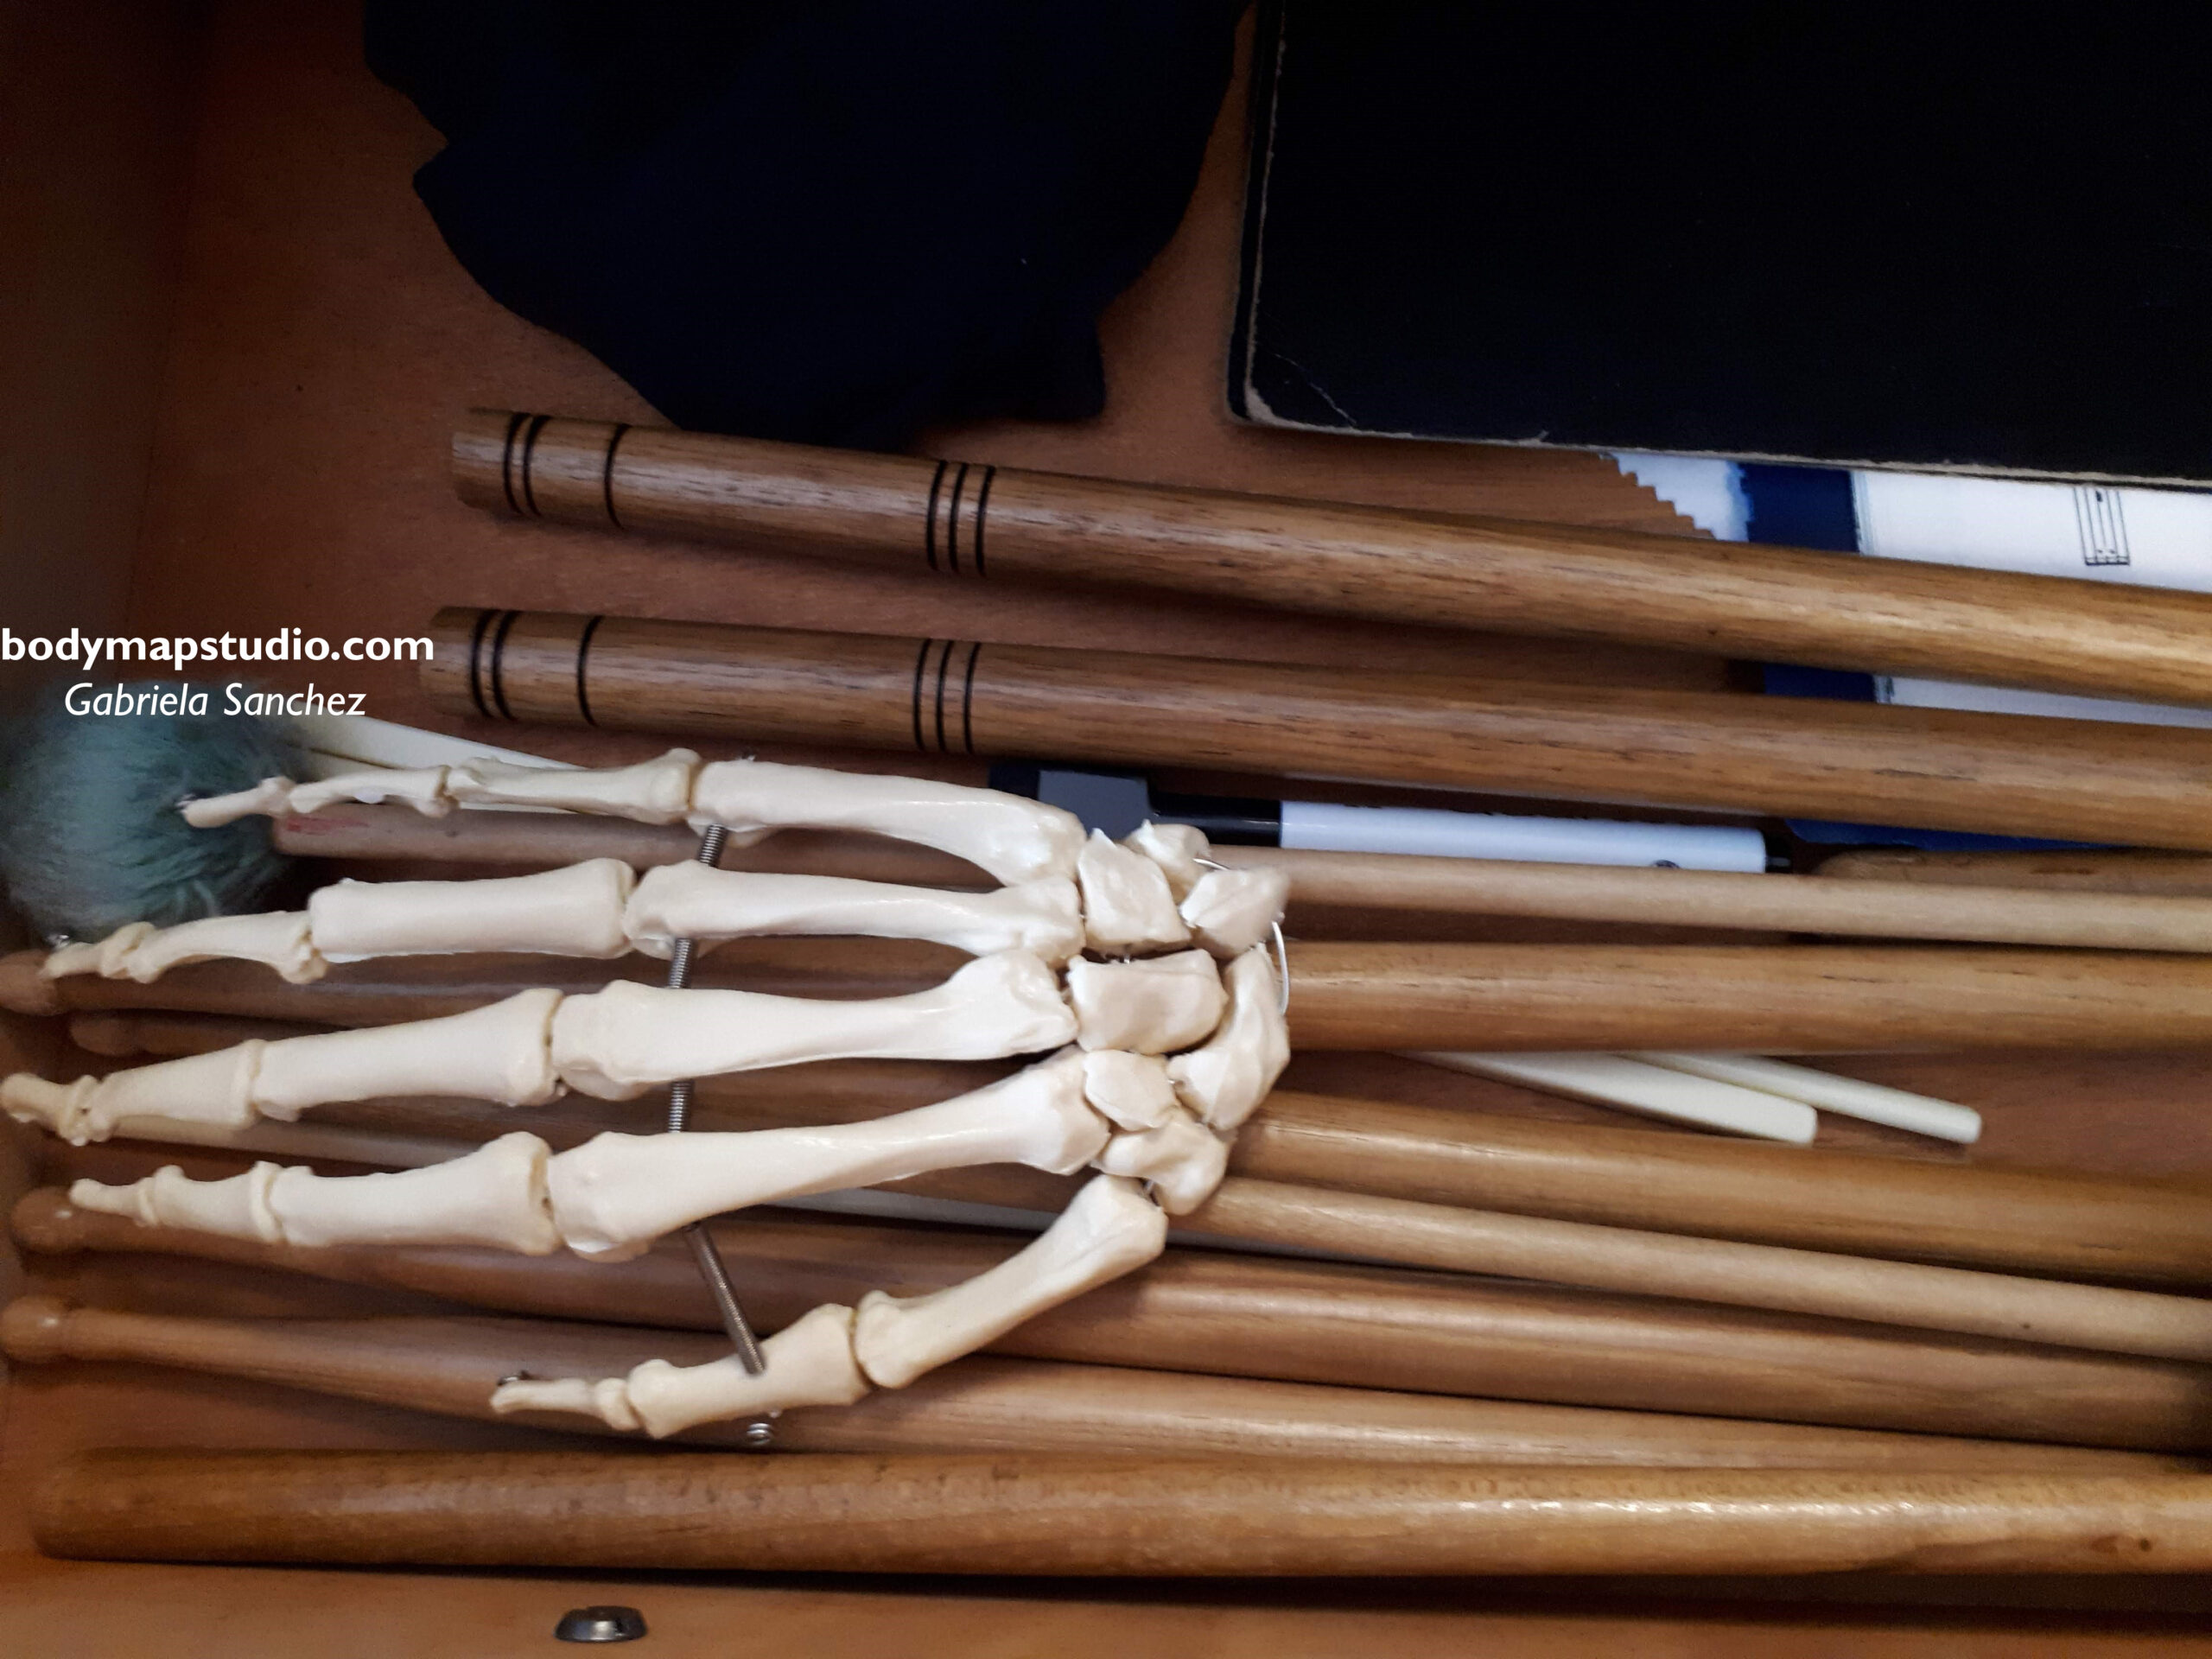 Anatomical model of the hand on top of several sticks and mallets.